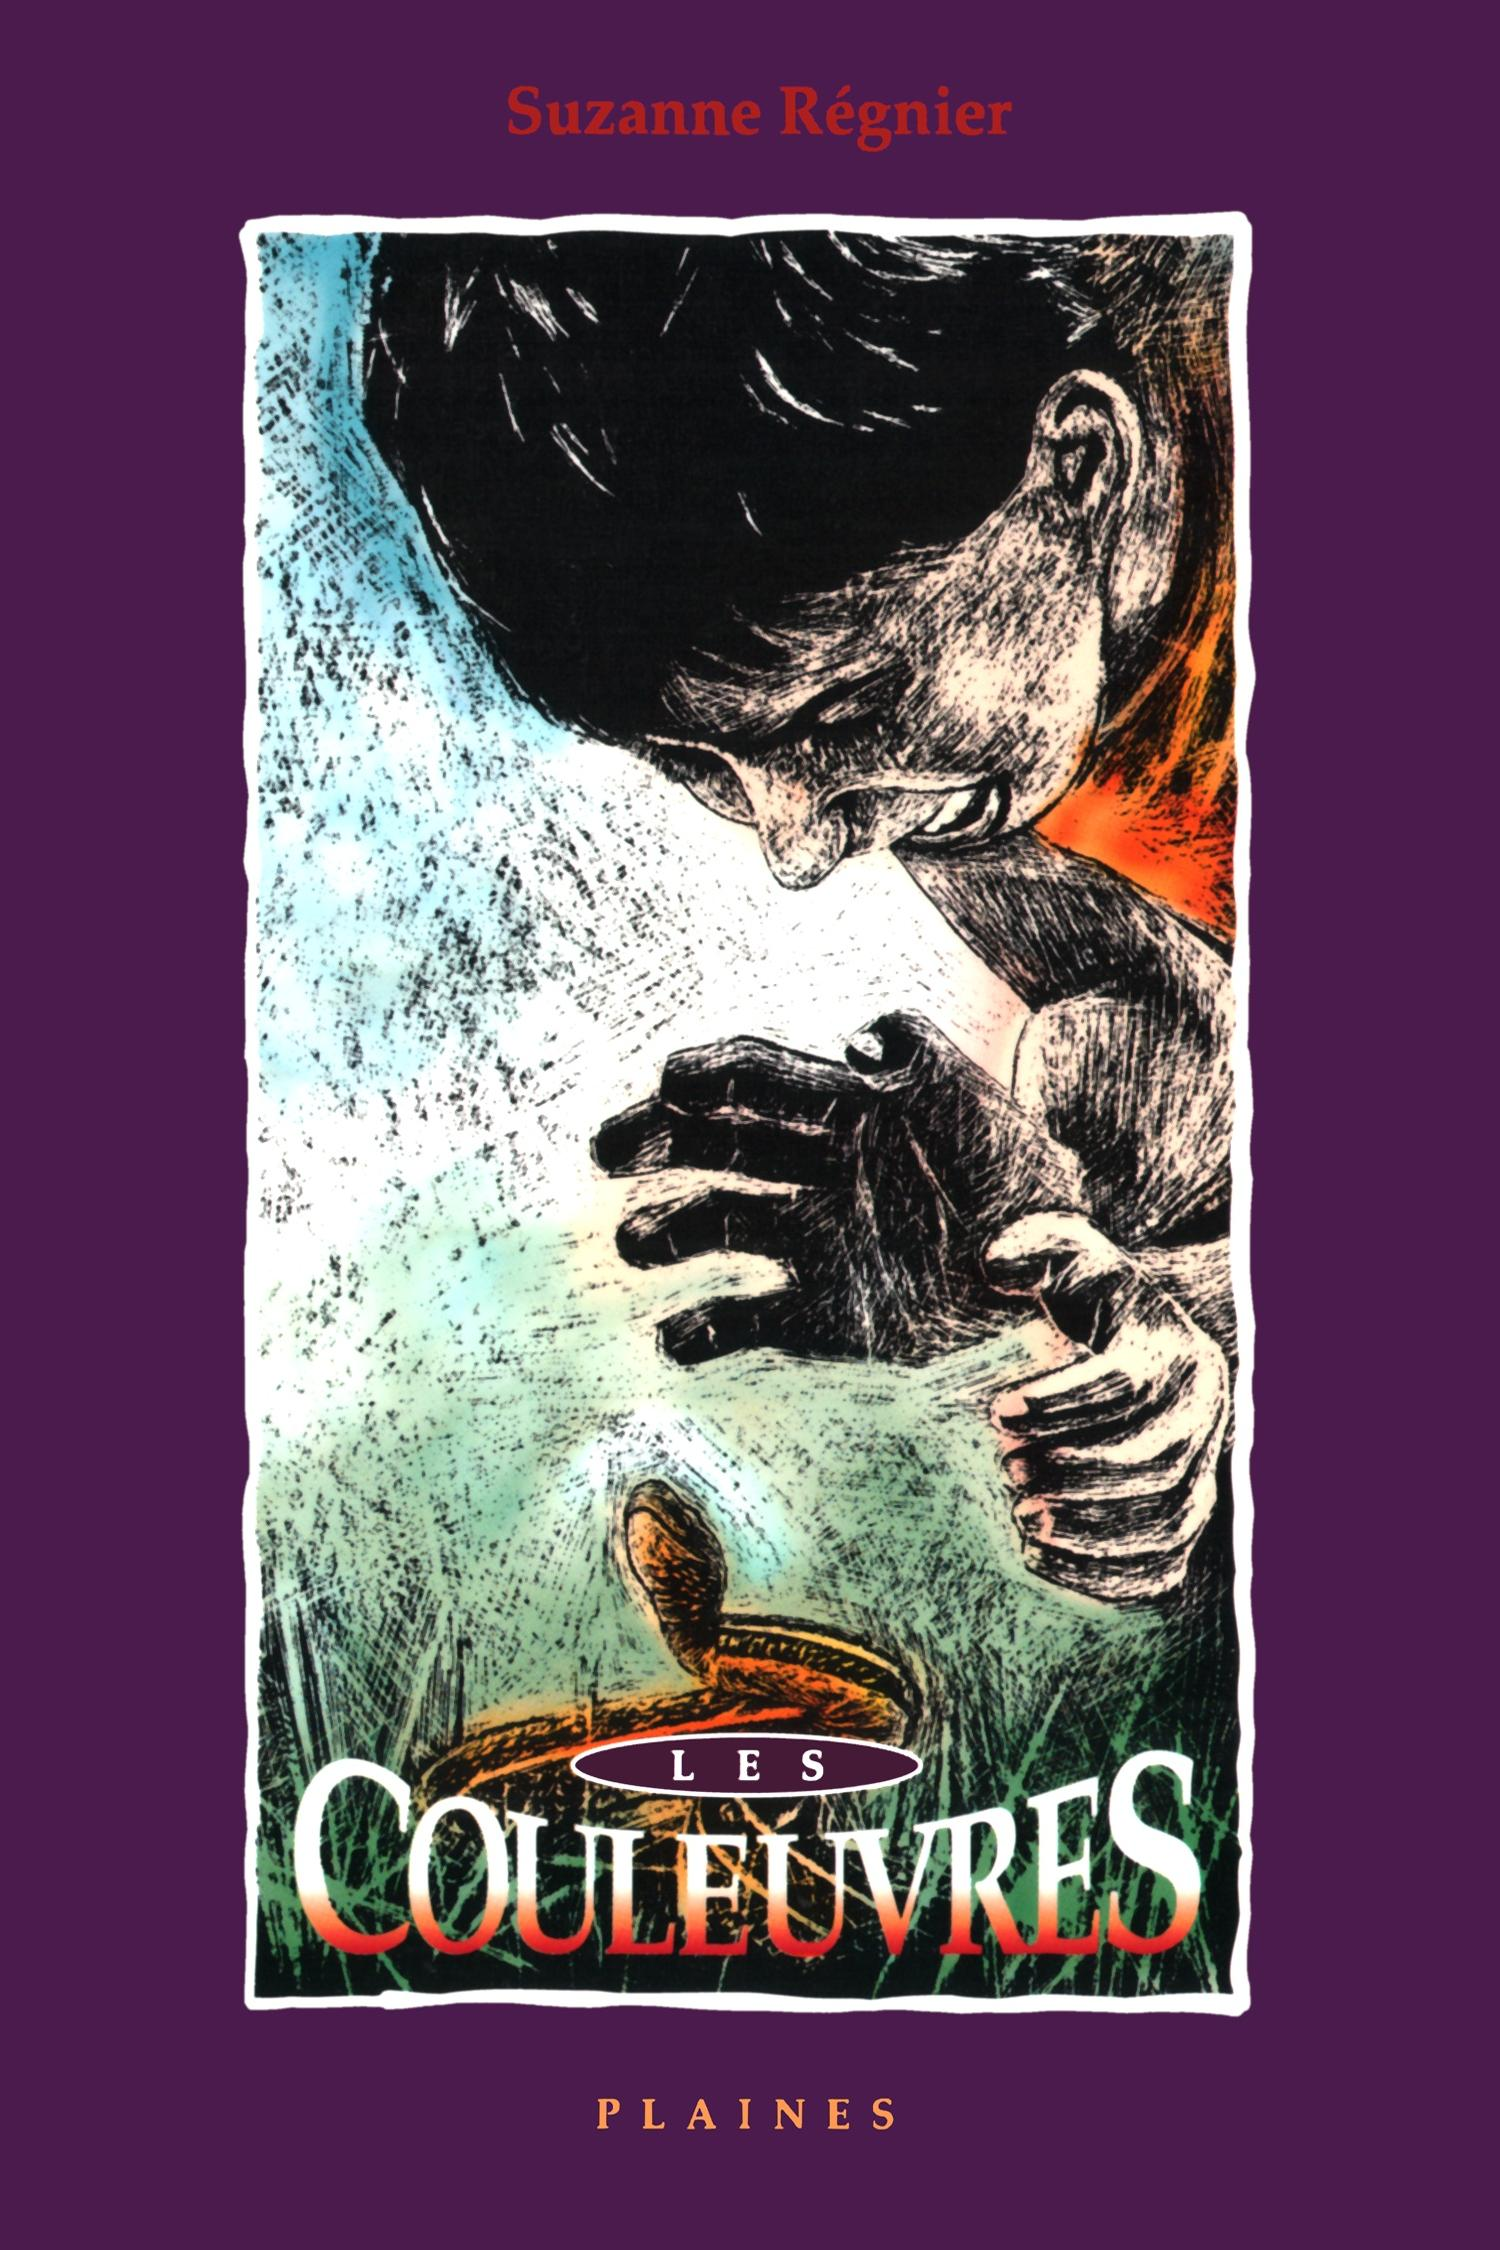 couleuvres, Les